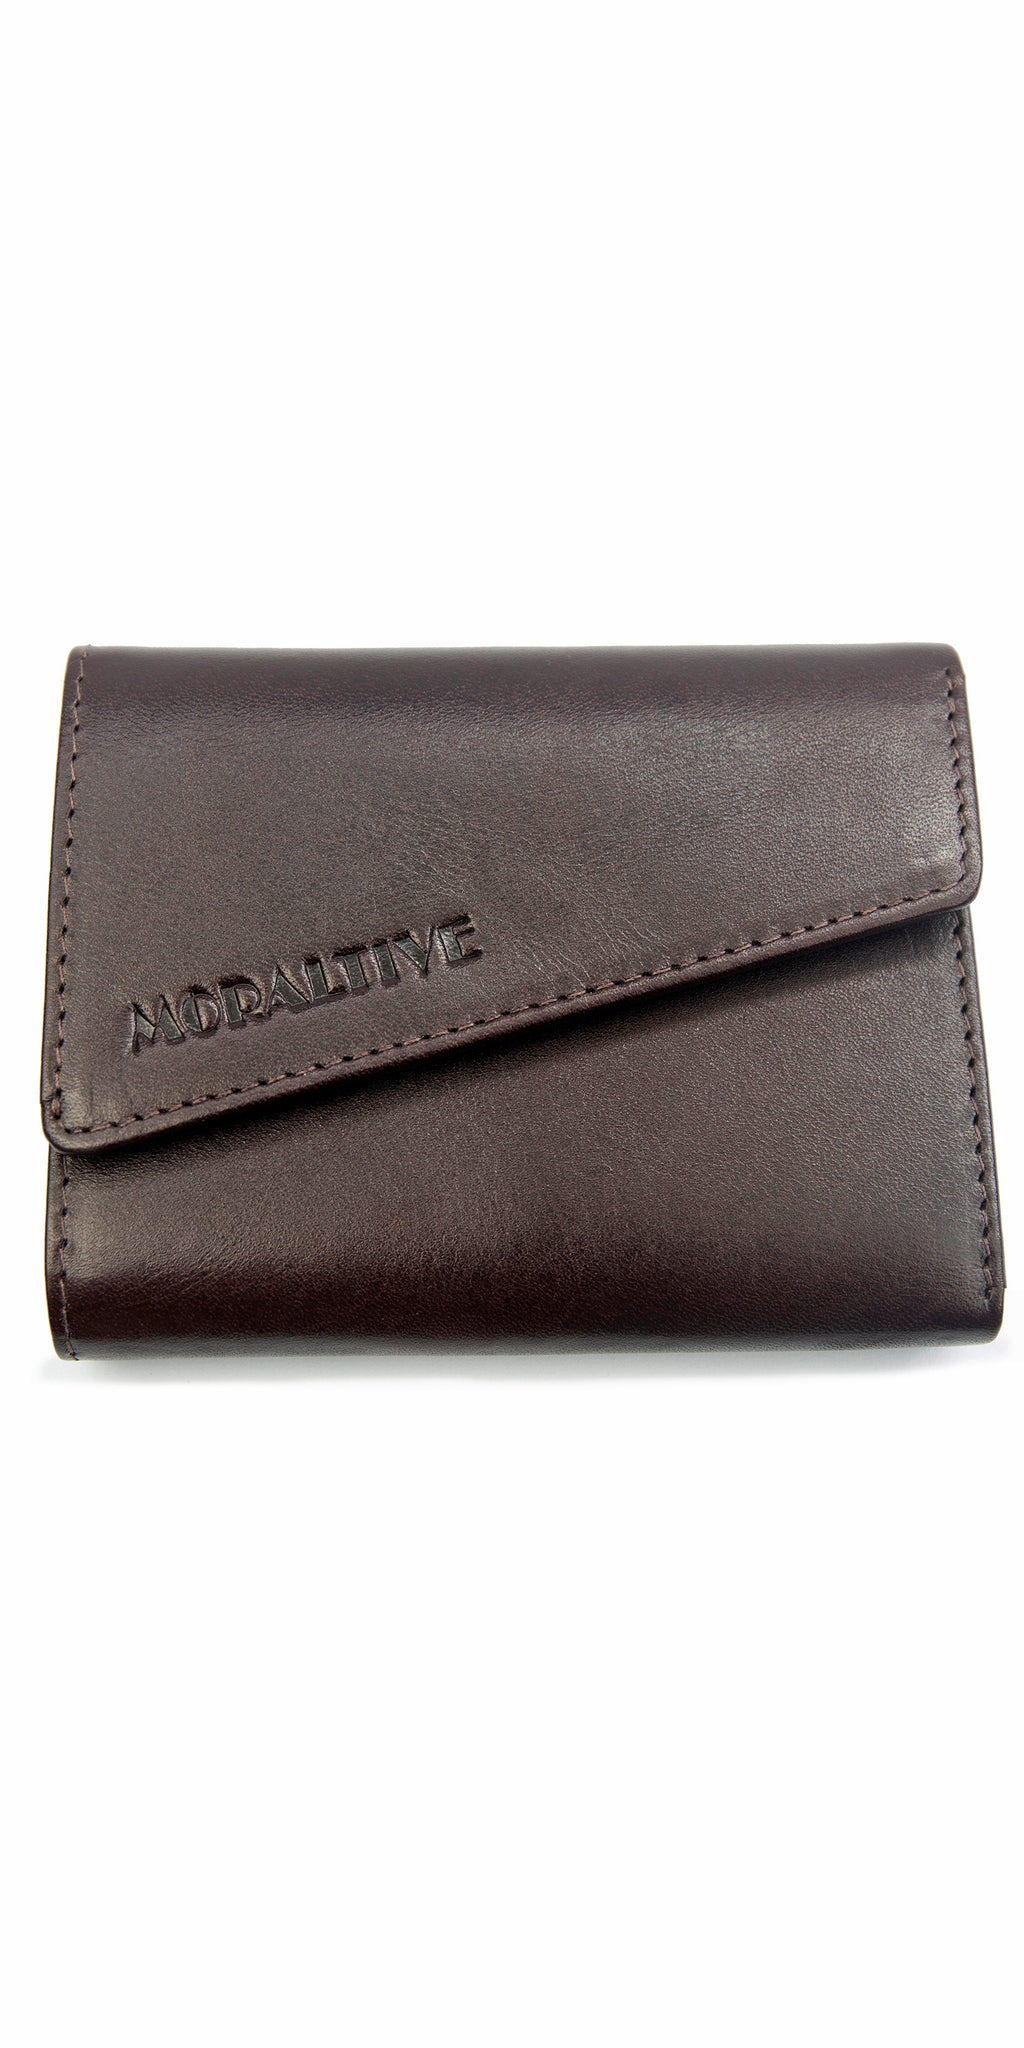 Moraltive Wallet Brown